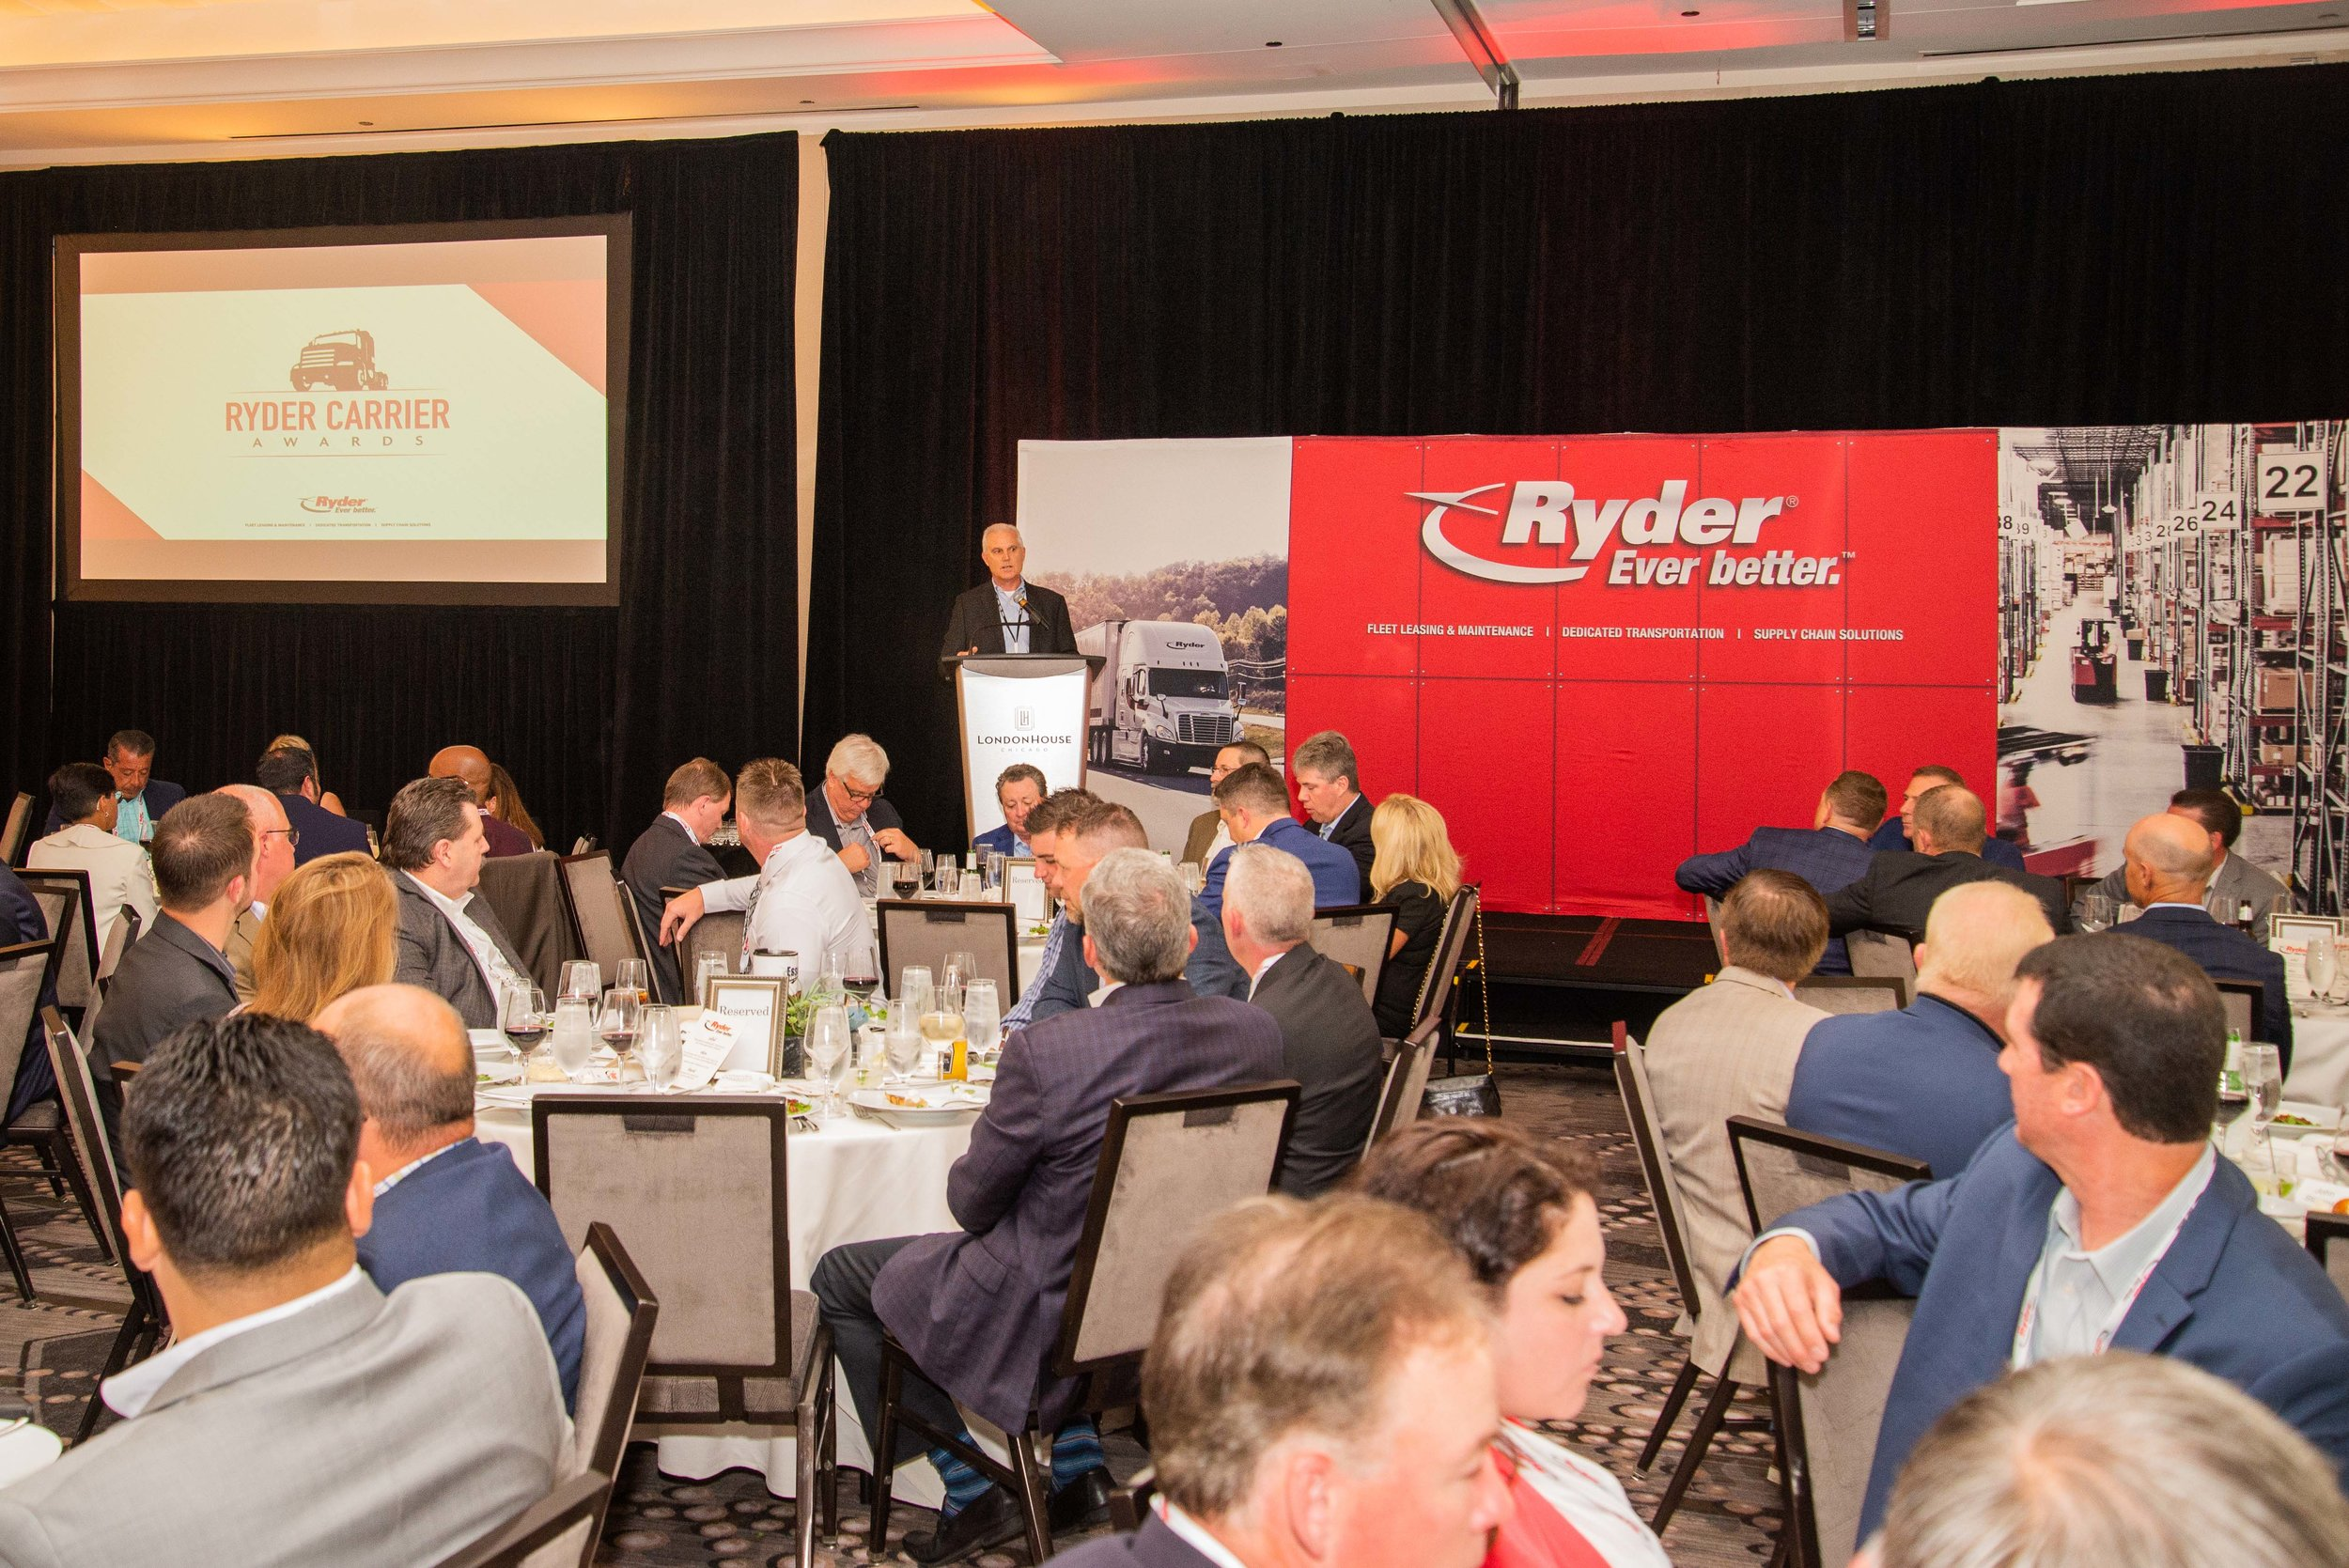 Ryder Carrier Quality Awards Chicago London House 060519-4.jpg